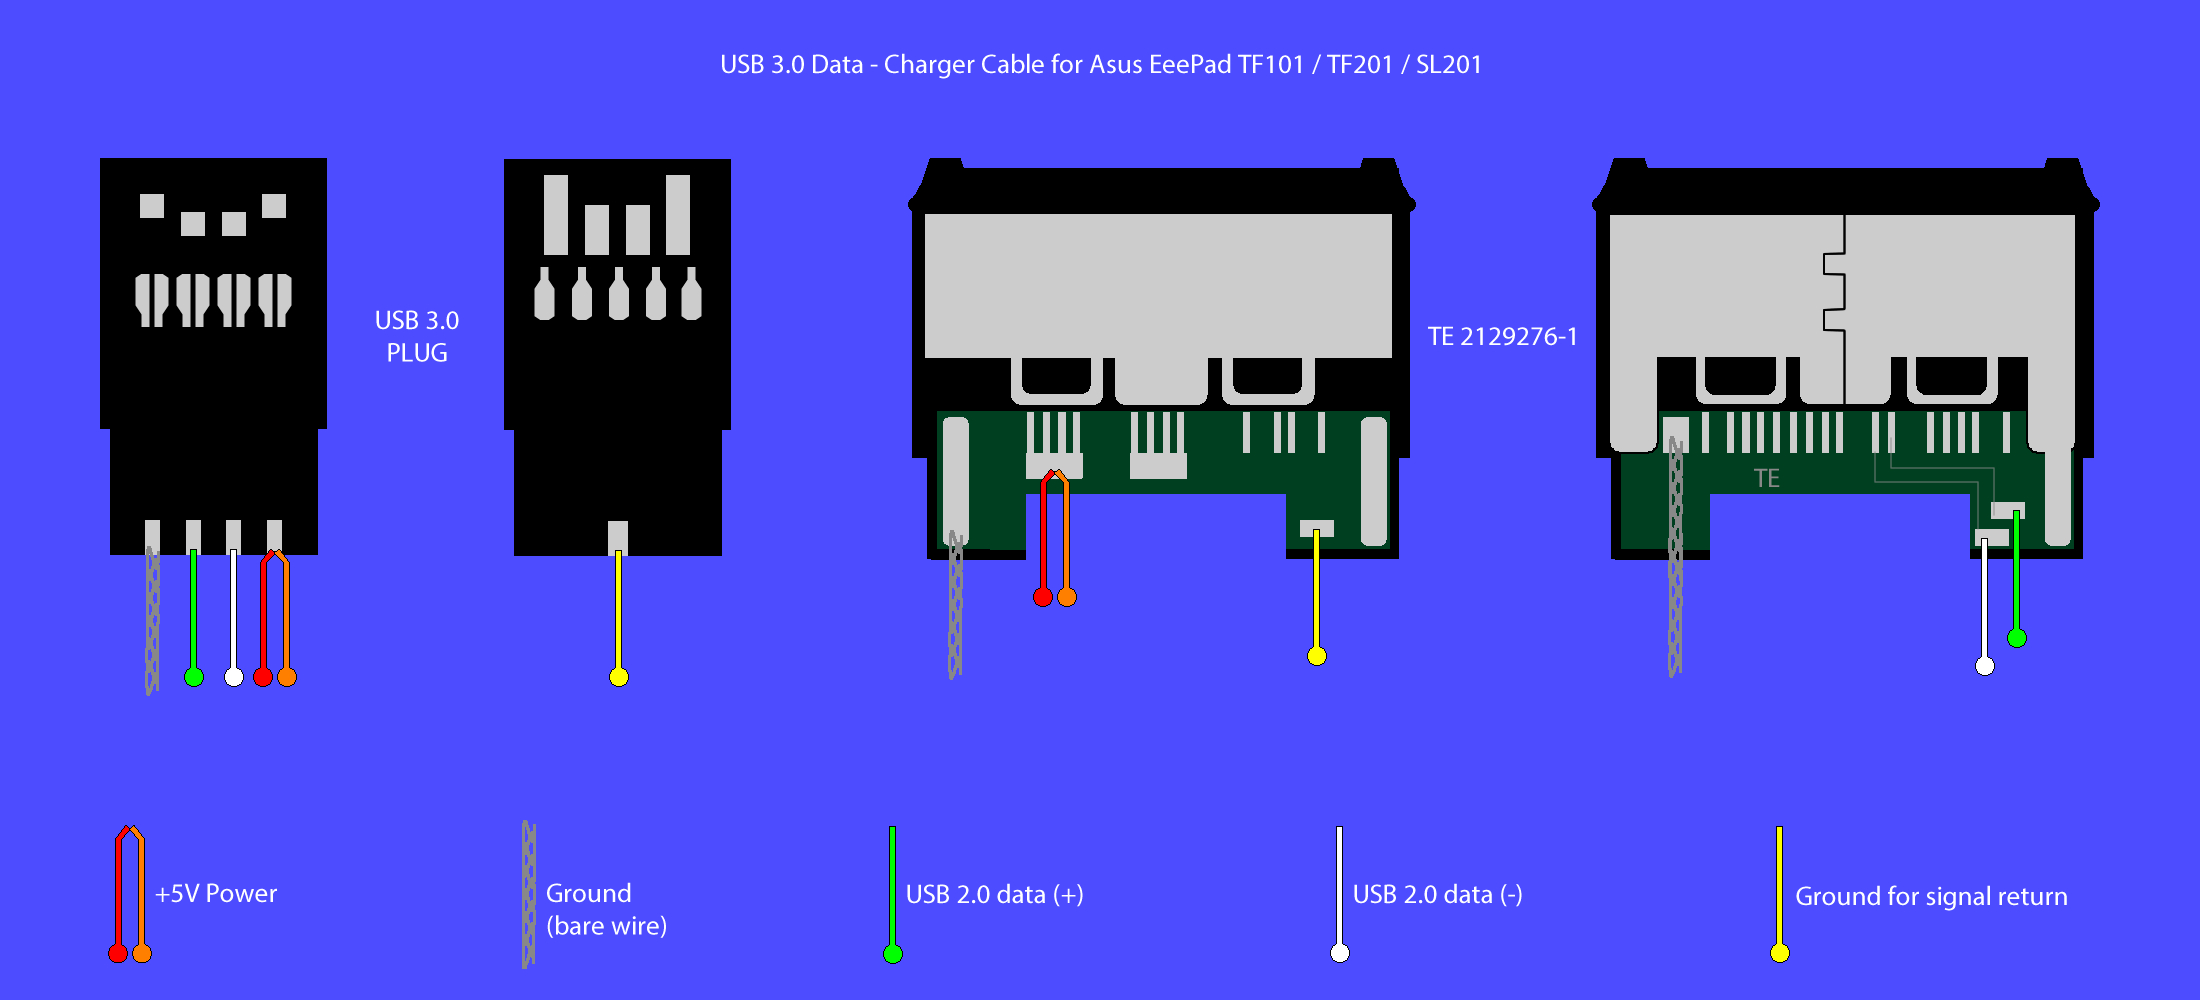 Ipad Charger Wiring Diagram | Wiring Diagram - Ipad Usb Wiring Diagram